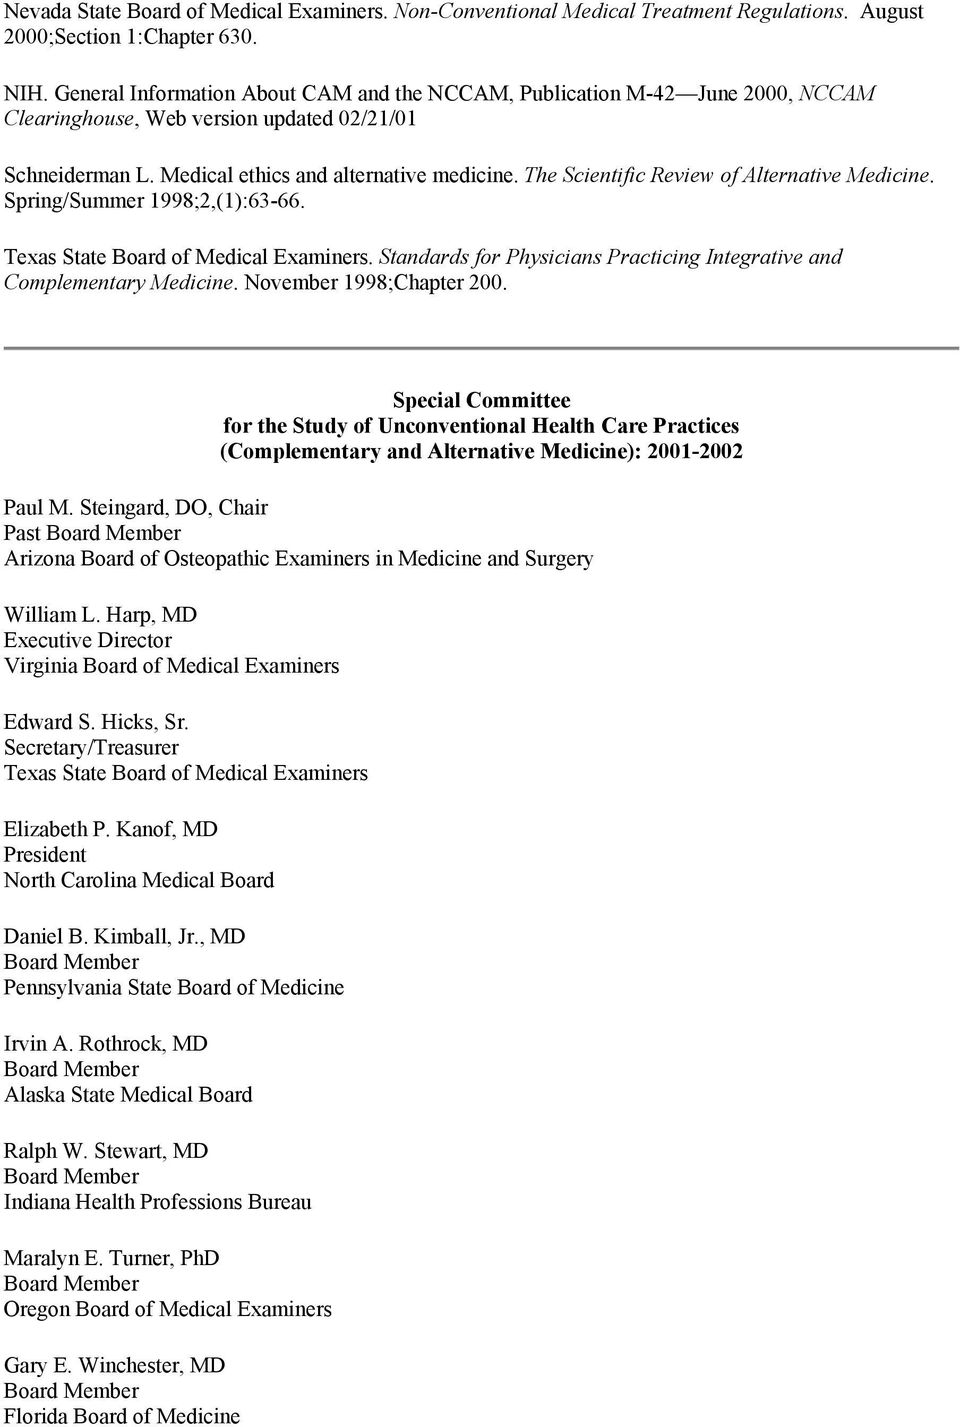 The Scientific Review of Alternative Medicine. Spring/Summer 1998;2,(1):63-66. Texas State Board of Medical Examiners. Standards for Physicians Practicing Integrative and Complementary Medicine.